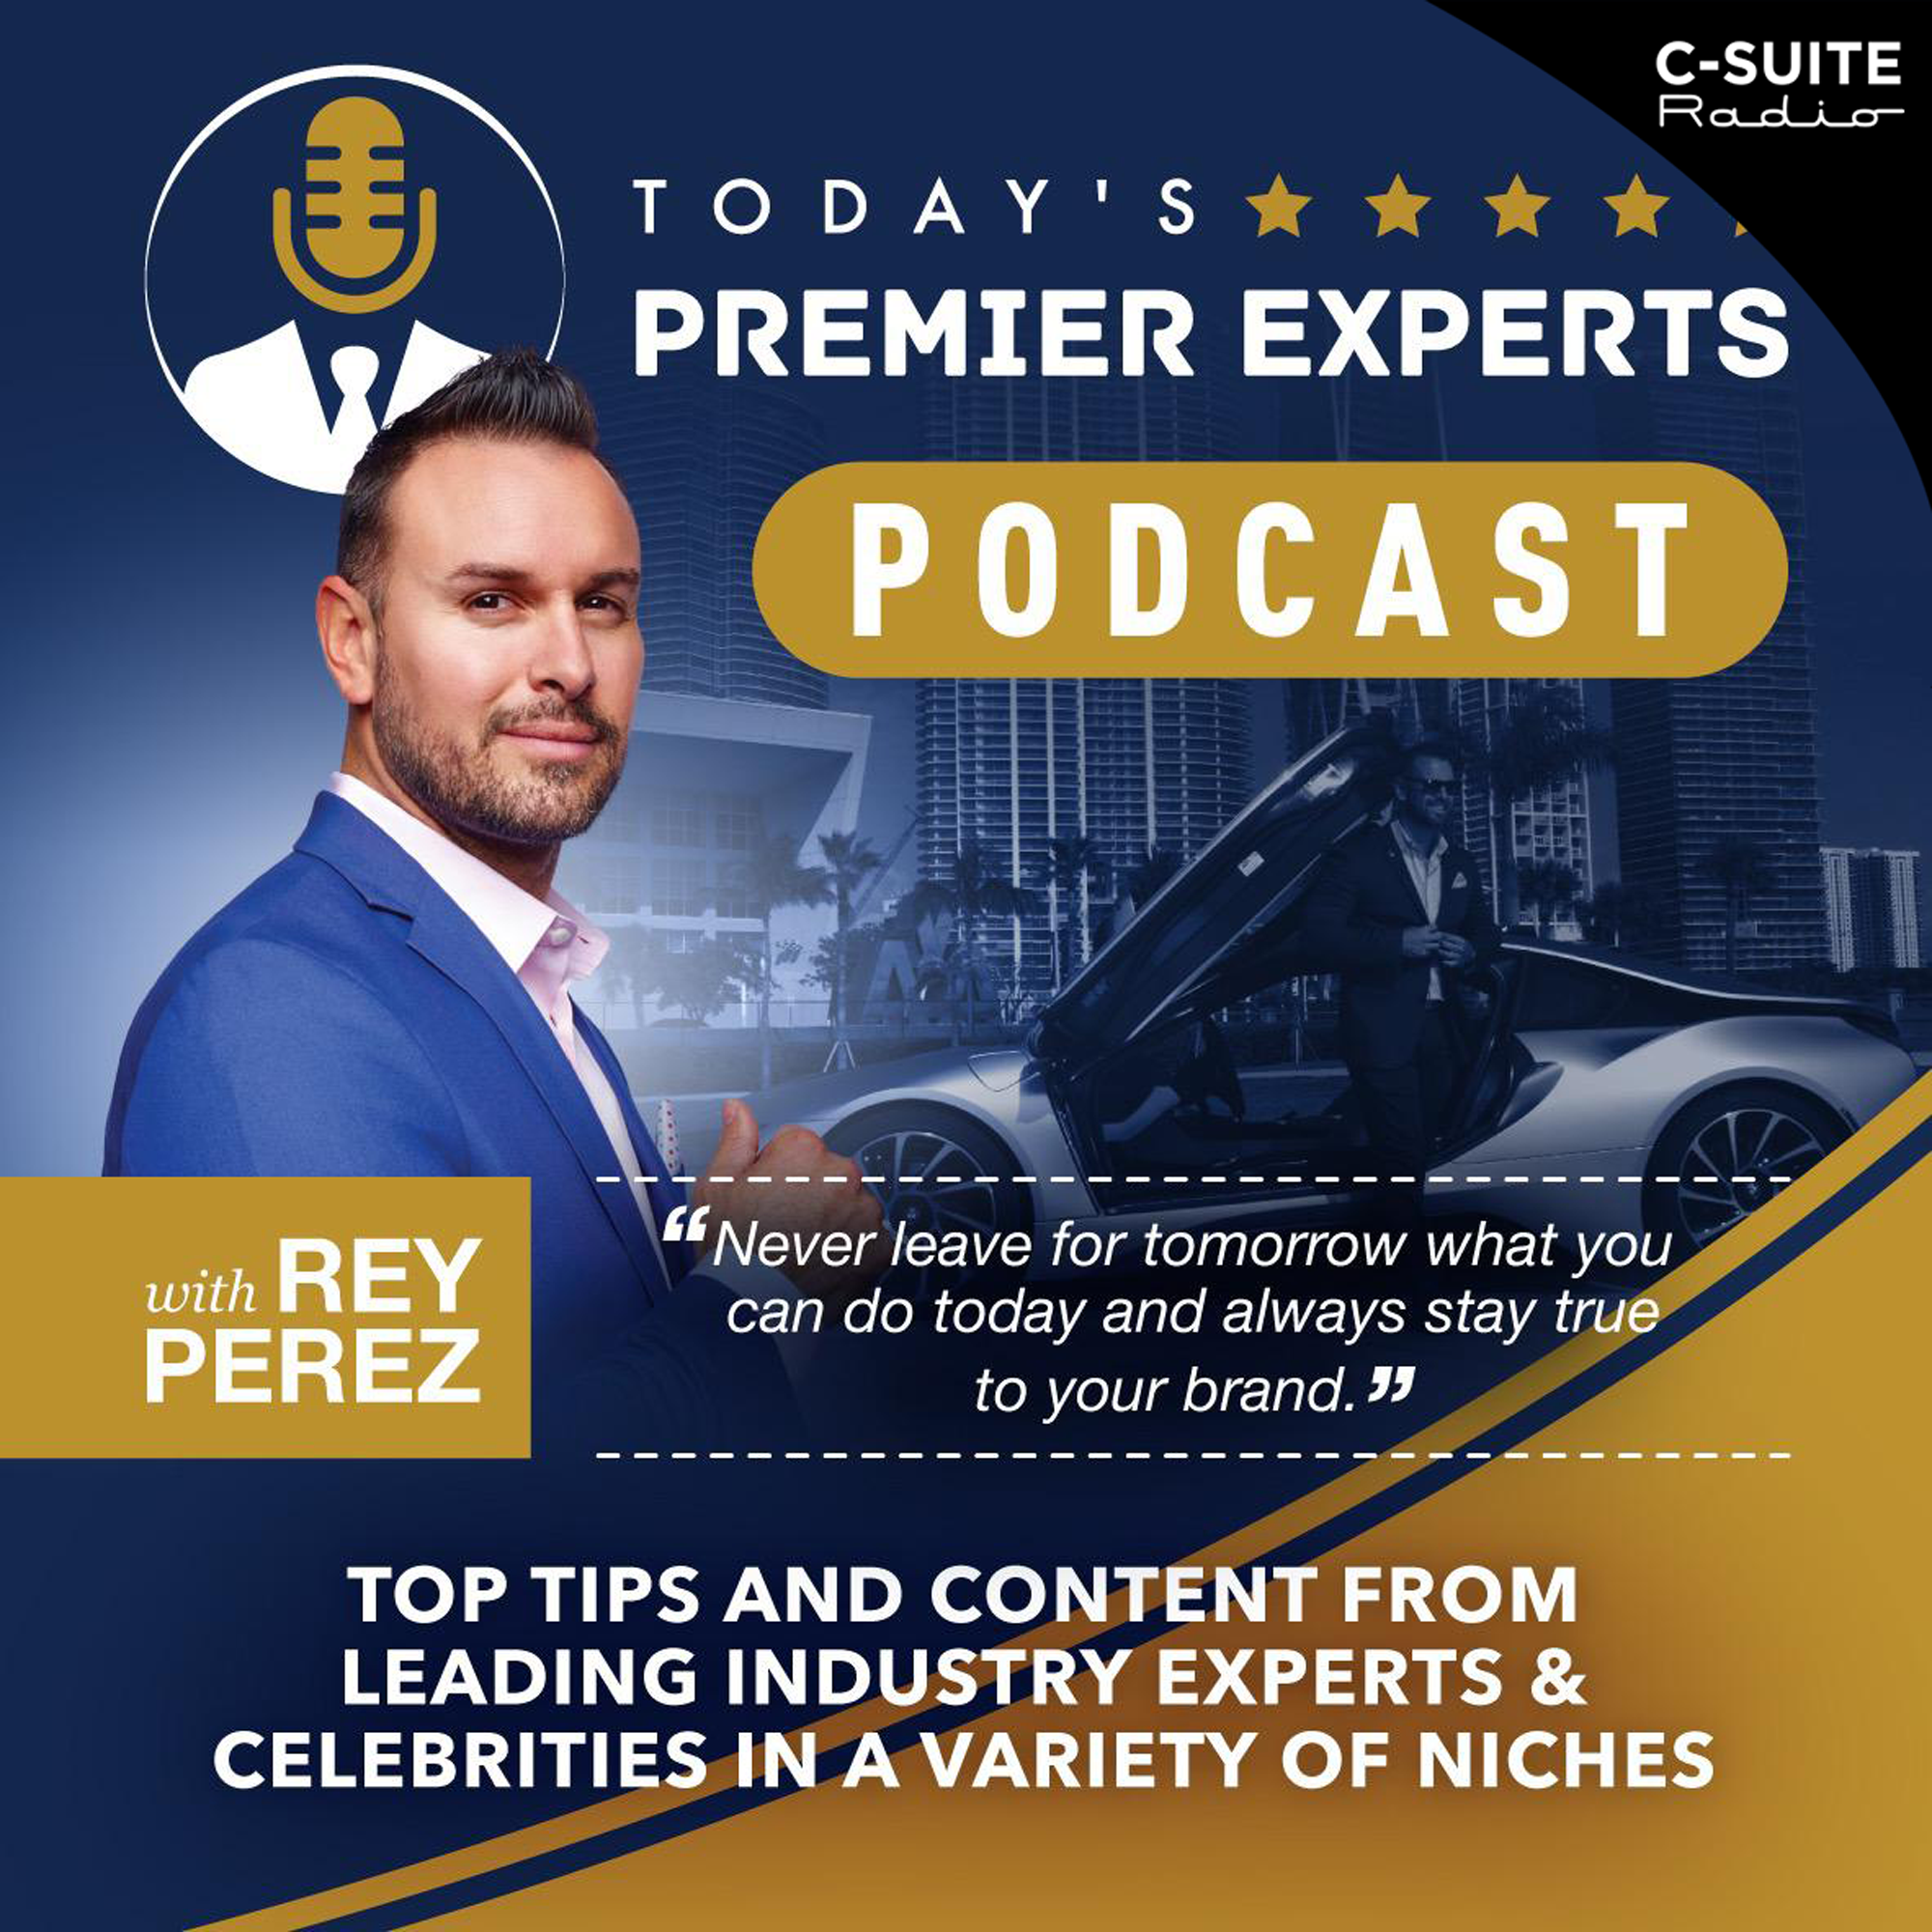 Today's Premier Experts